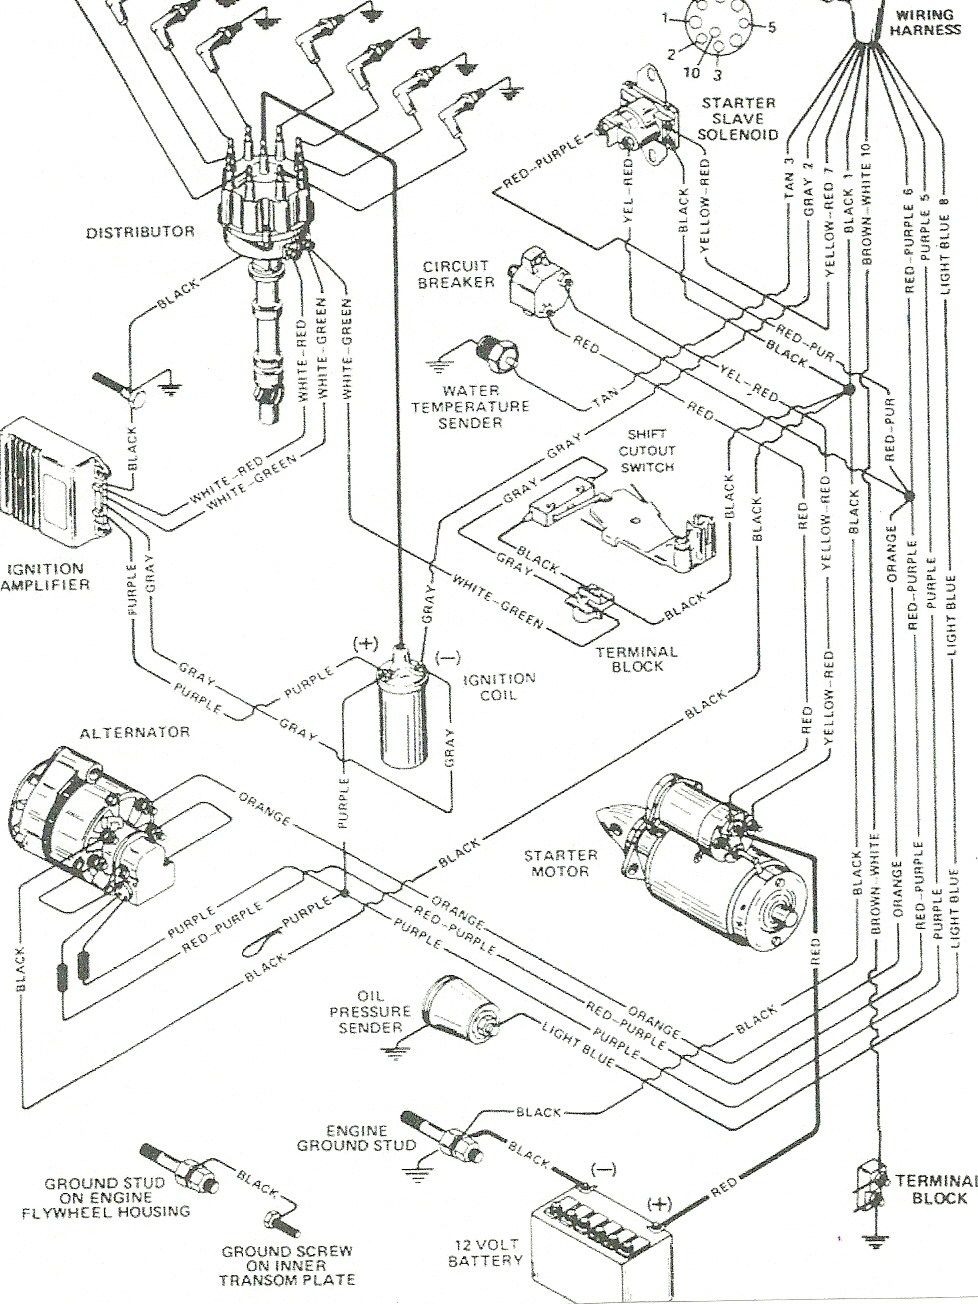 mercruiser 30 wiring diagram, Wiring diagram | Mercruiser 140 ... on chris craft wiring diagram, polaris wiring diagram, chevrolet wiring diagram, clark wiring diagram, evinrude key switch wiring diagram, atlas wiring diagram, johnson wiring diagram, omc schematic diagrams, john deere wiring diagram, ace wiring diagram, sea ray wiring diagram, apc wiring diagram, sears wiring diagram, viking wiring diagram, nissan wiring diagram, 96 evinrude wiring diagram, regal wiring diagram, 1972 50 hp evinrude wiring diagram, omg wiring diagram,